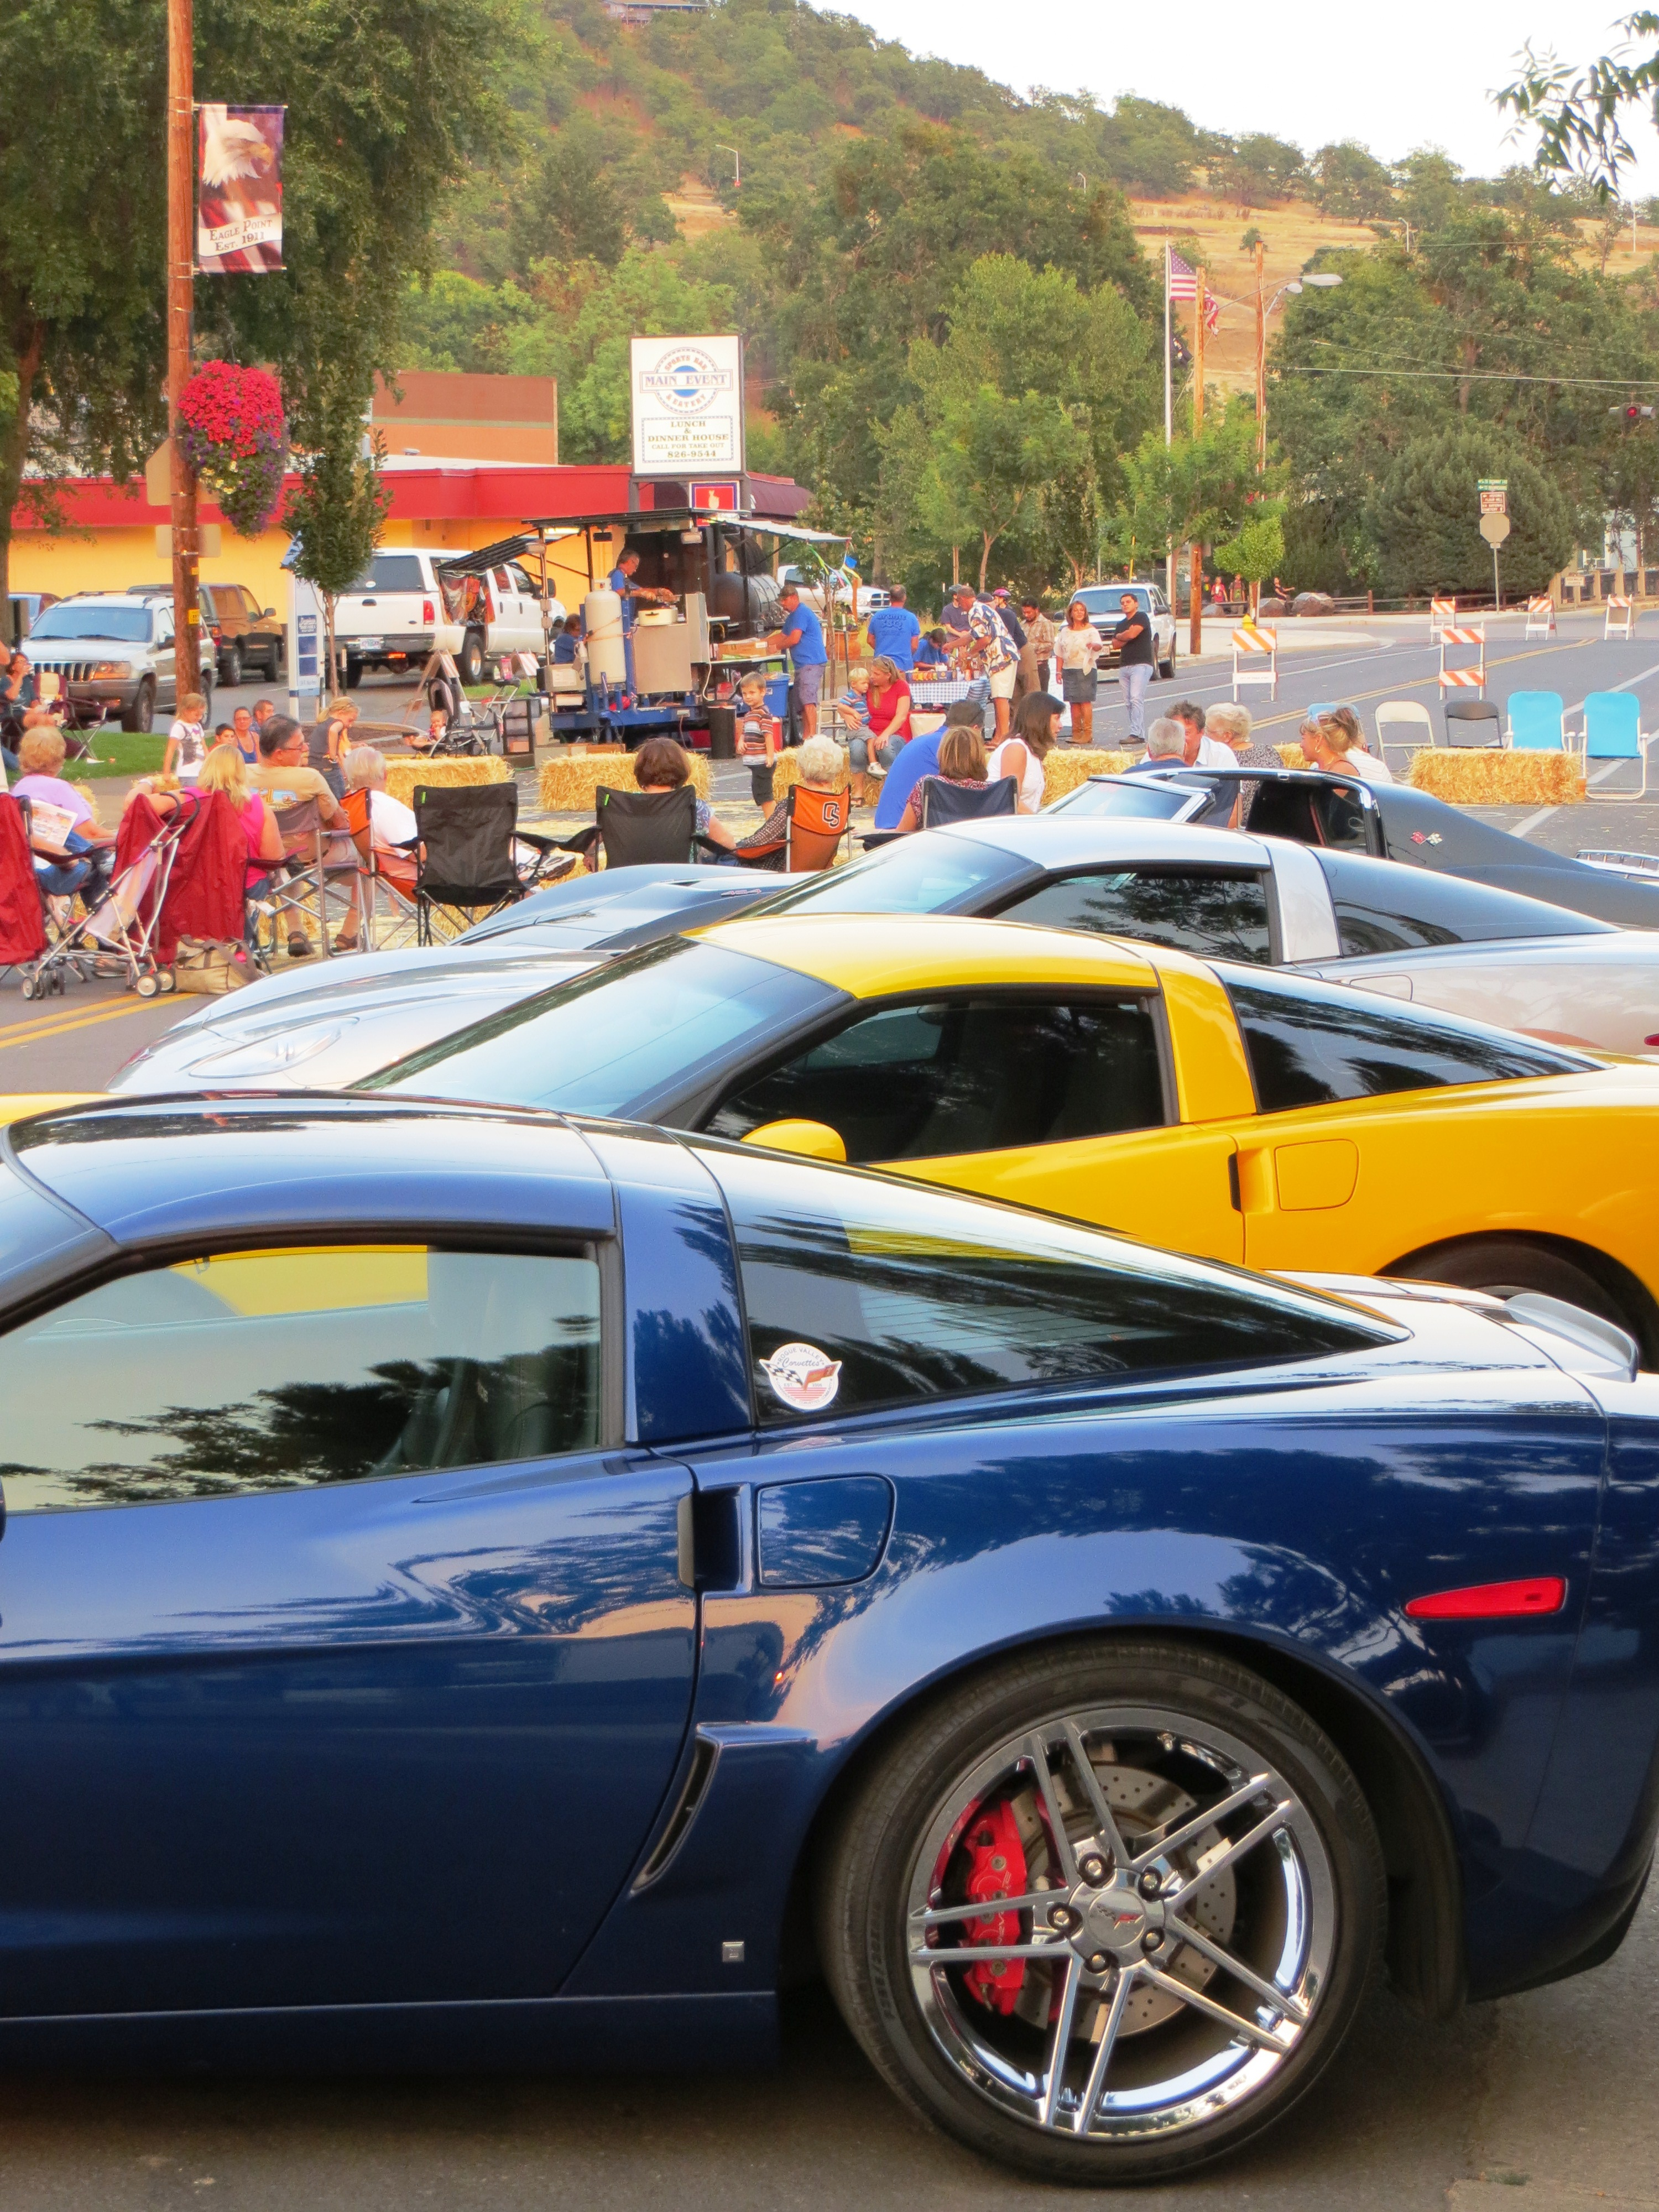 The Corvette Club